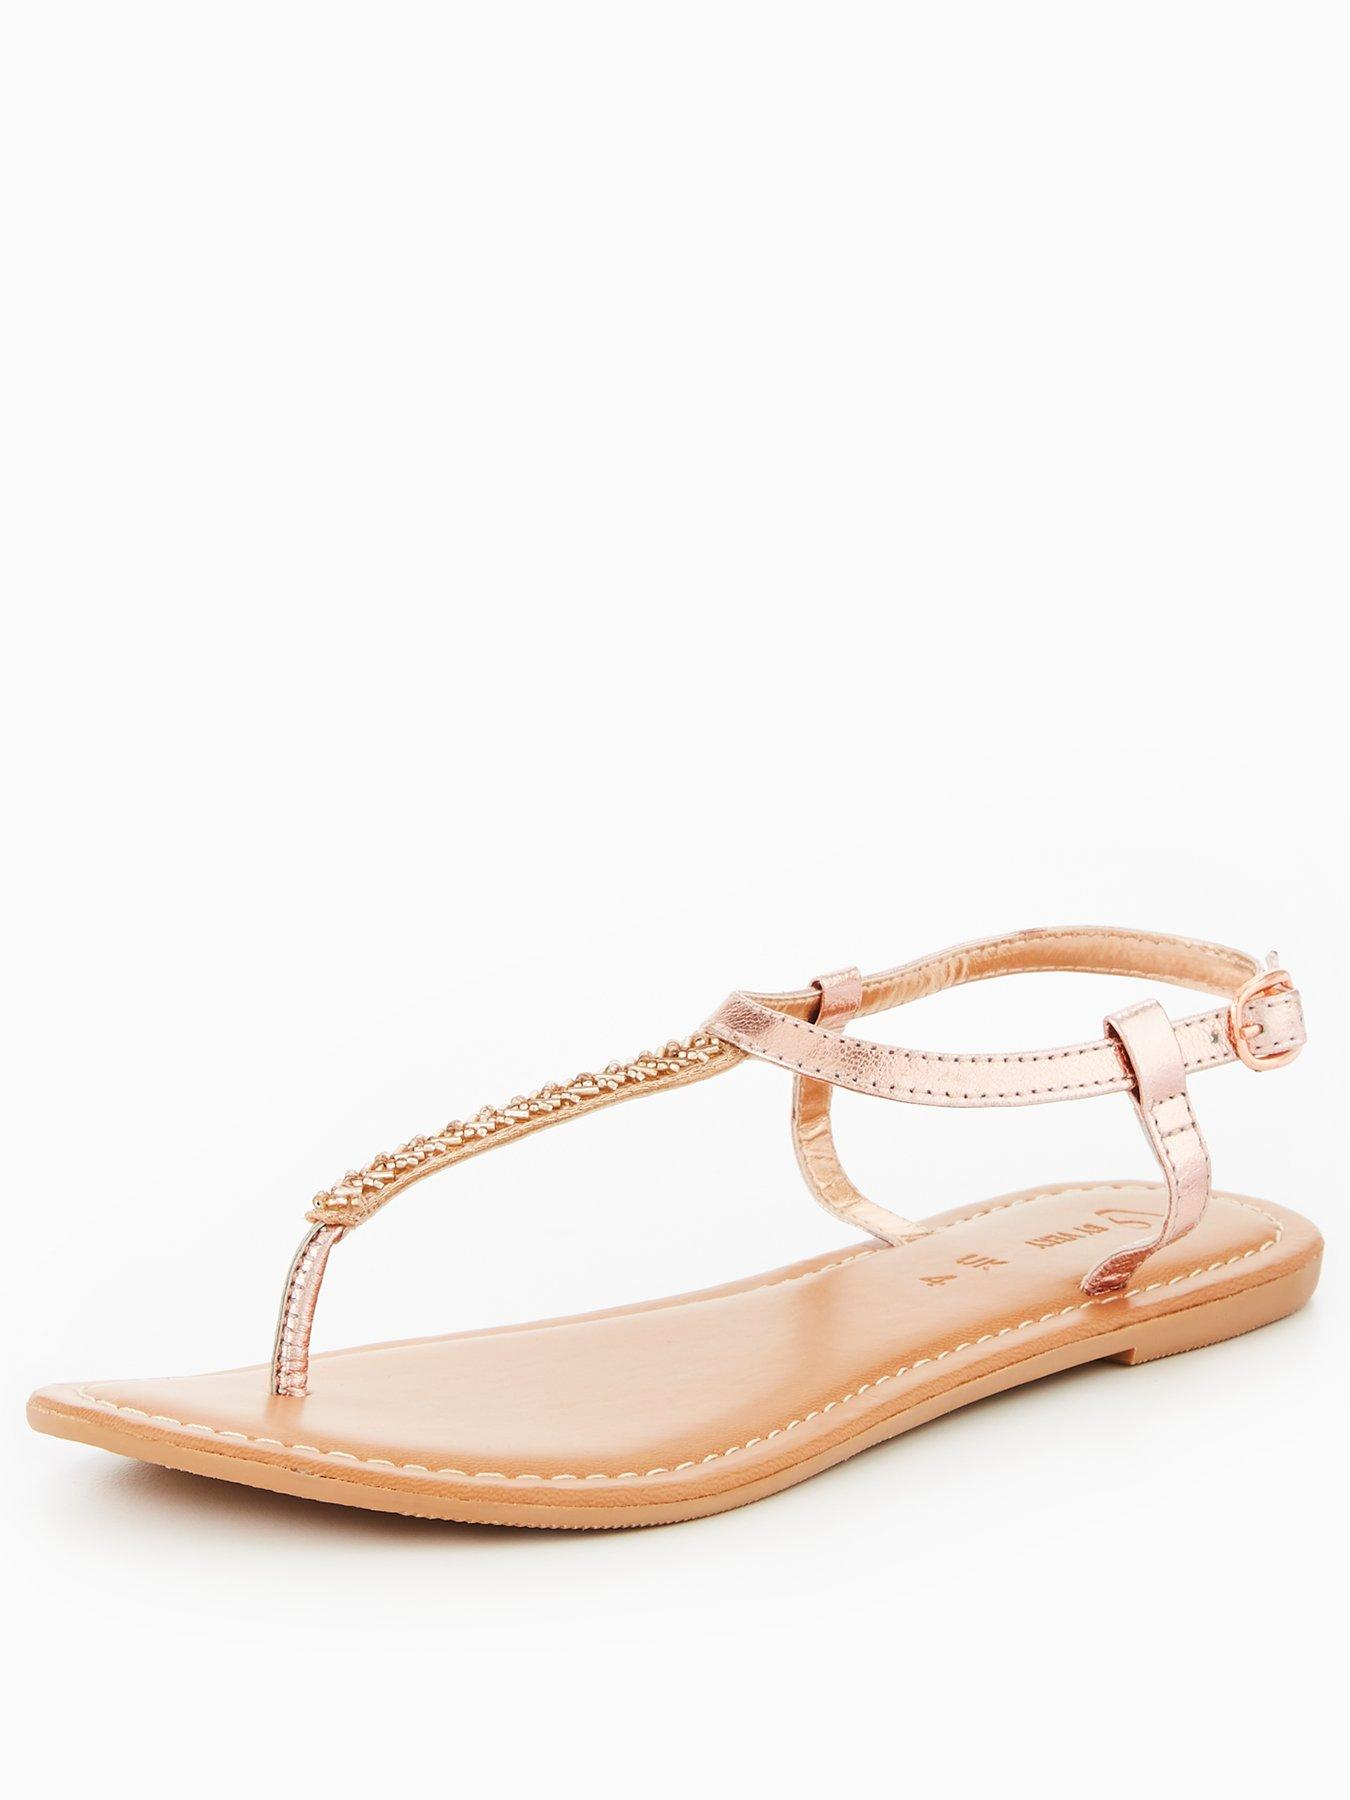 V by Very Melodie Leather Embellished Toe Post Sandal - Rose Gold